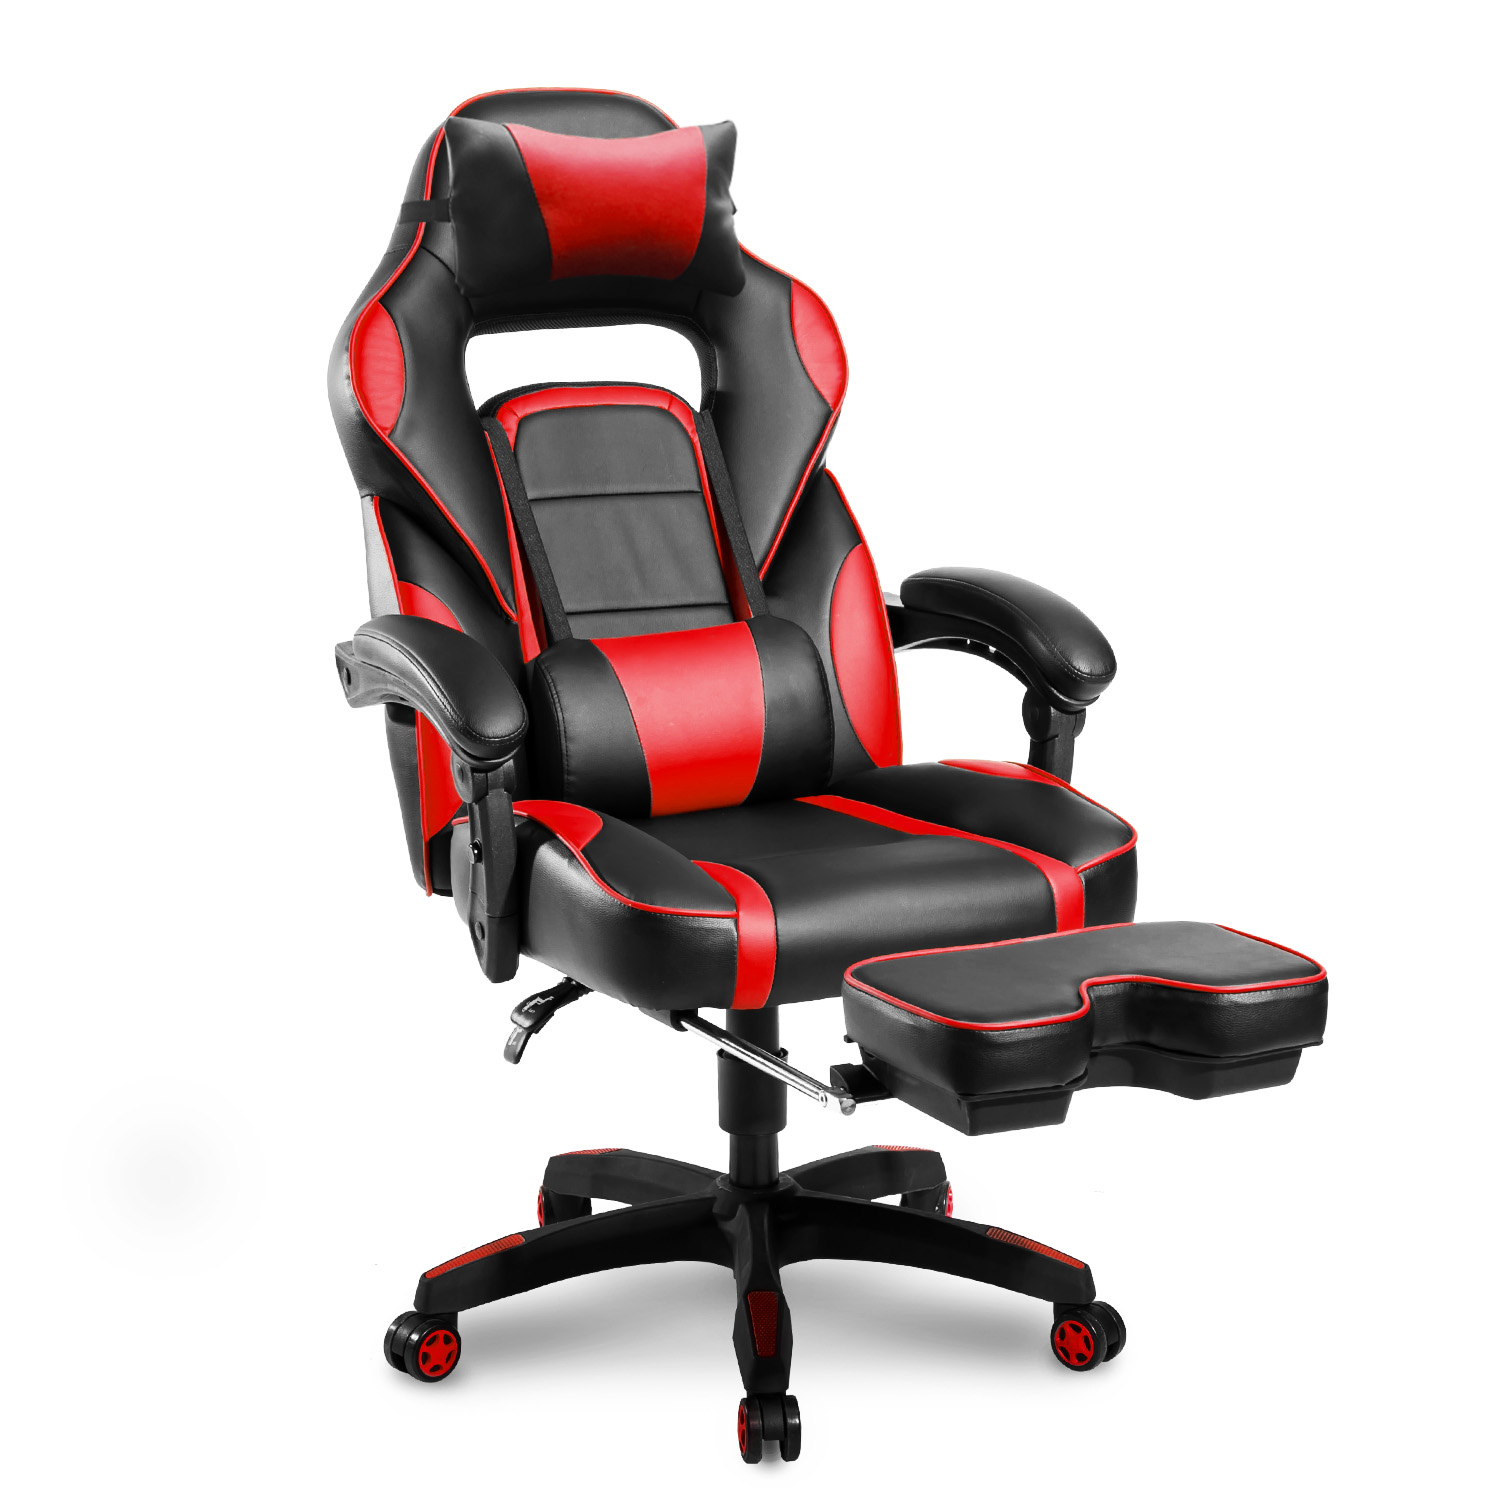 Gaming Chair With Footrest For Kids, Ergonomic Computer Chair With Arms,  Large Size PU Leather Swivel Desk Office Chair With Lumbar Support, 90 175  ...